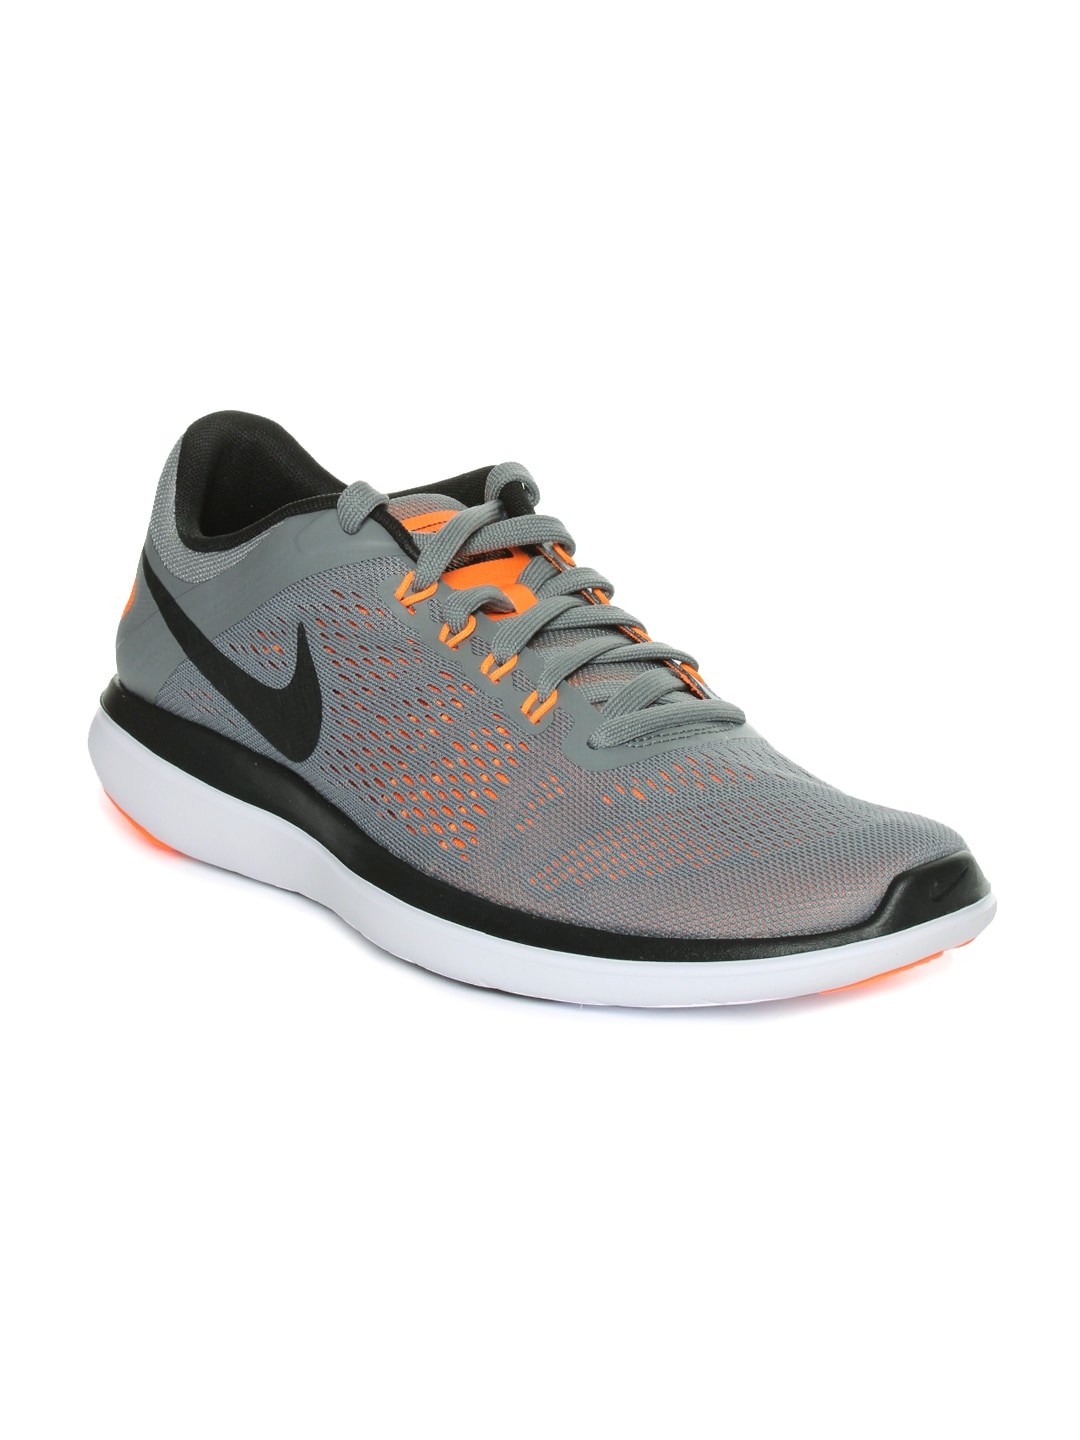 16e14ef60a4c Nike 830369-010 Men Grey Flex 2016 Running Shoes - Best Price in India